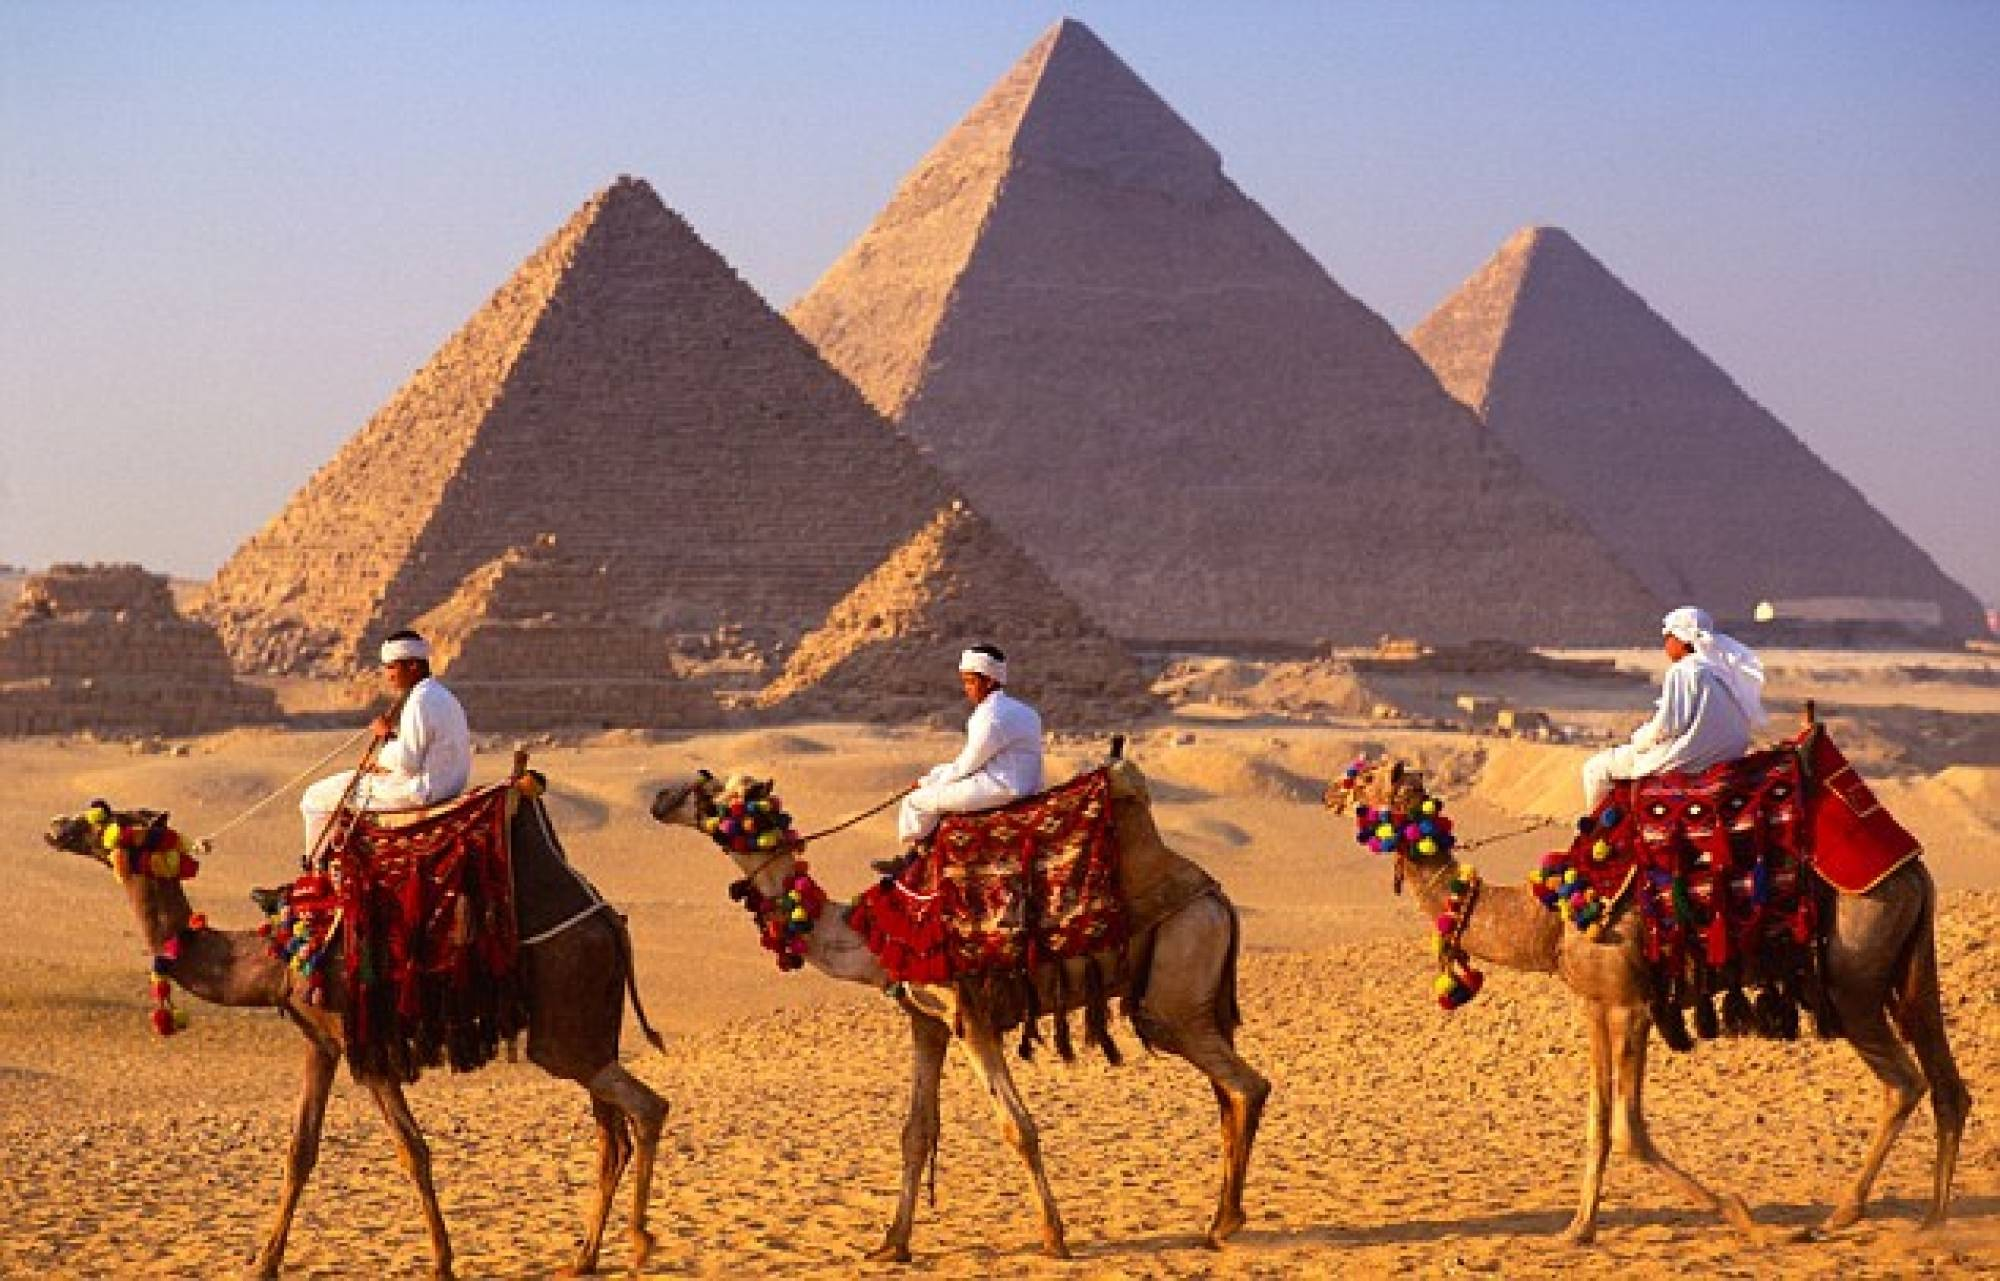 10 Day Classic Egypt with 4 Day Nile Cruise from New York (airfare included)